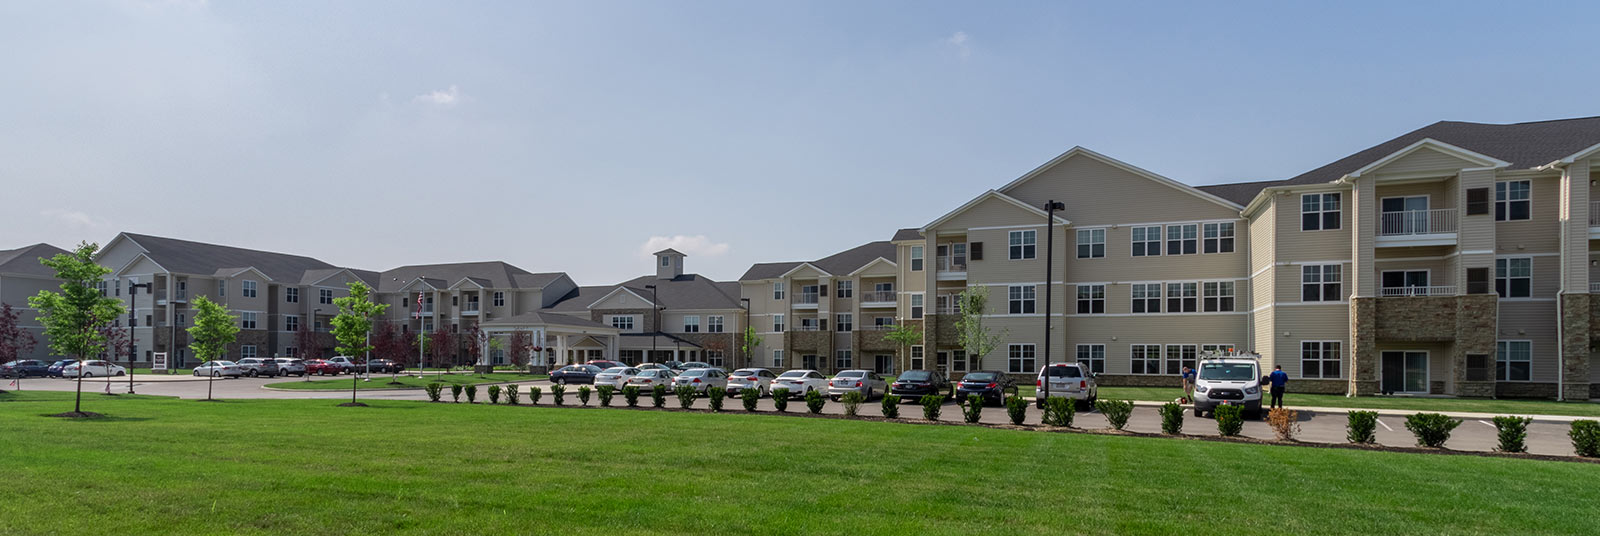 The expansive StoryPoint senior living community campus in Grove City, Ohio